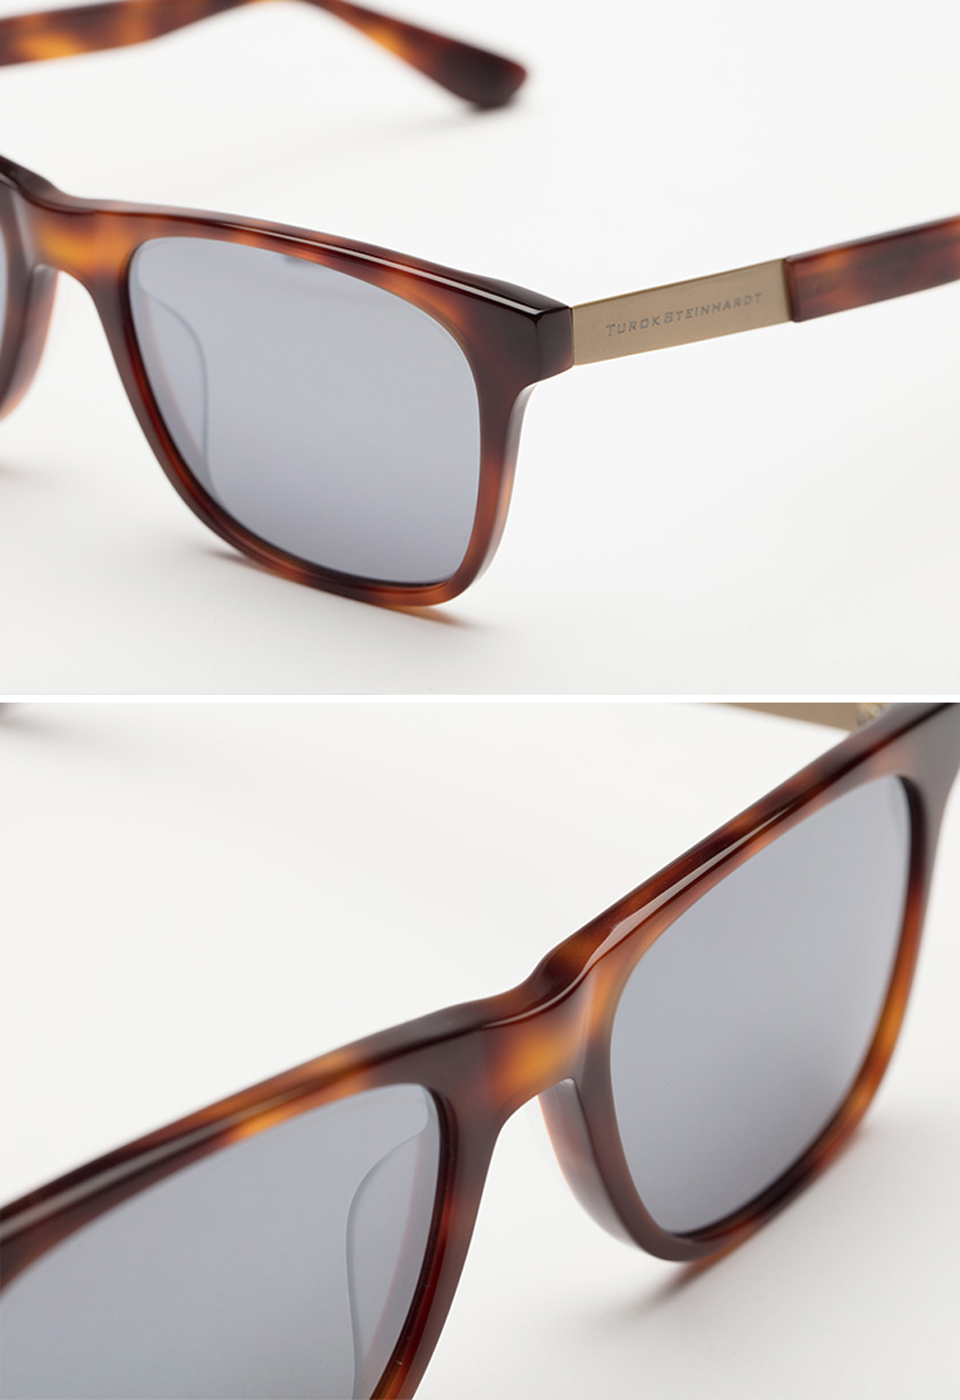 Окуляри Turok Steinhardt Sunglasses Men SR004-1320 дизайн